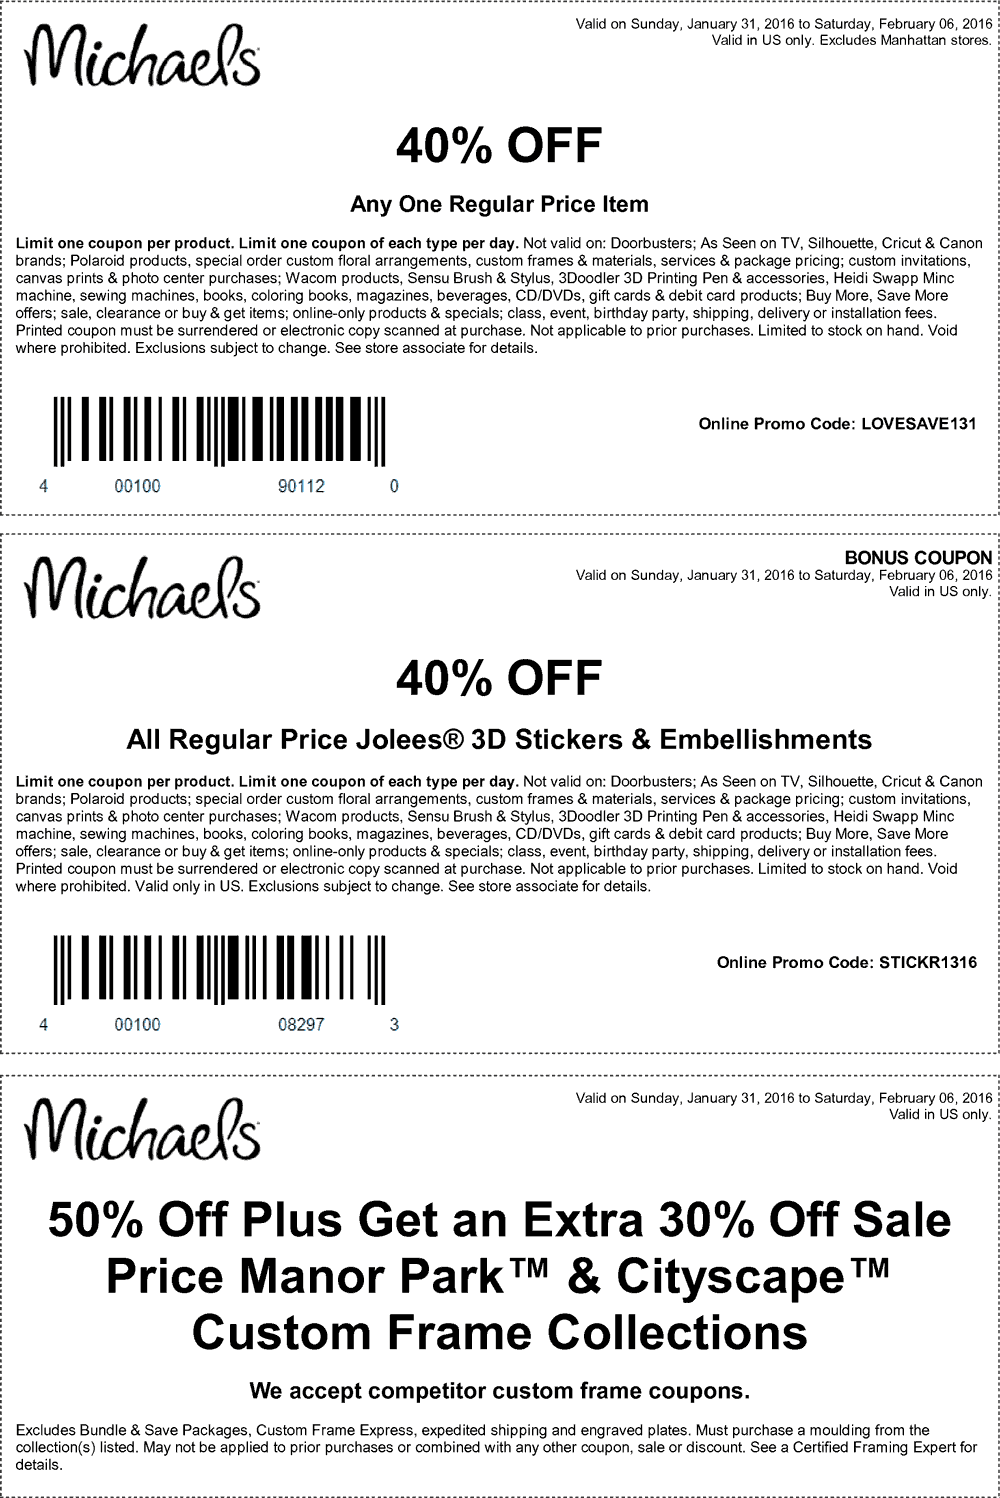 Michaels Coupon October 2018 40% off a single item at Michaels, or online via promo code LOVESAVE131